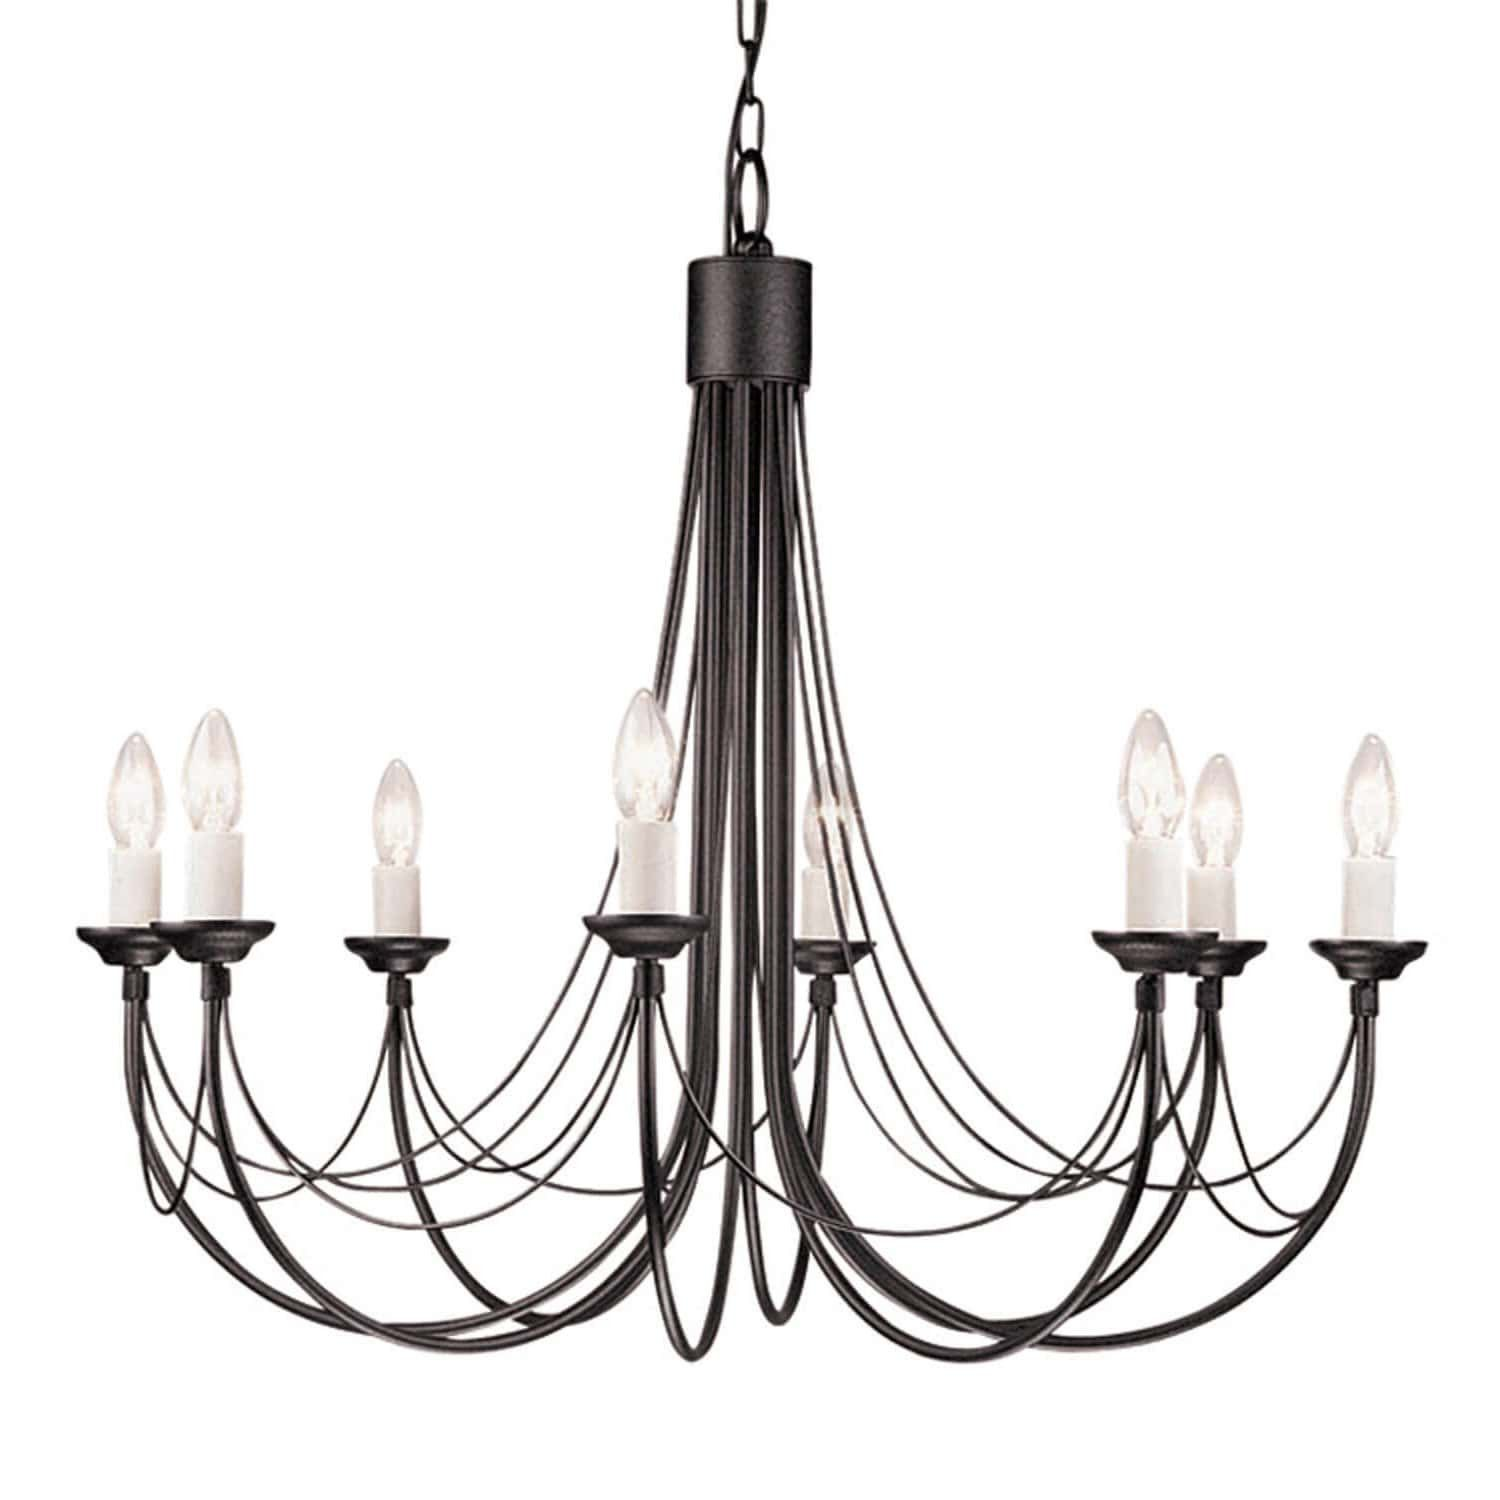 Bel Air Lighting Candle 6 Light Black Chandelier 9016 Bk